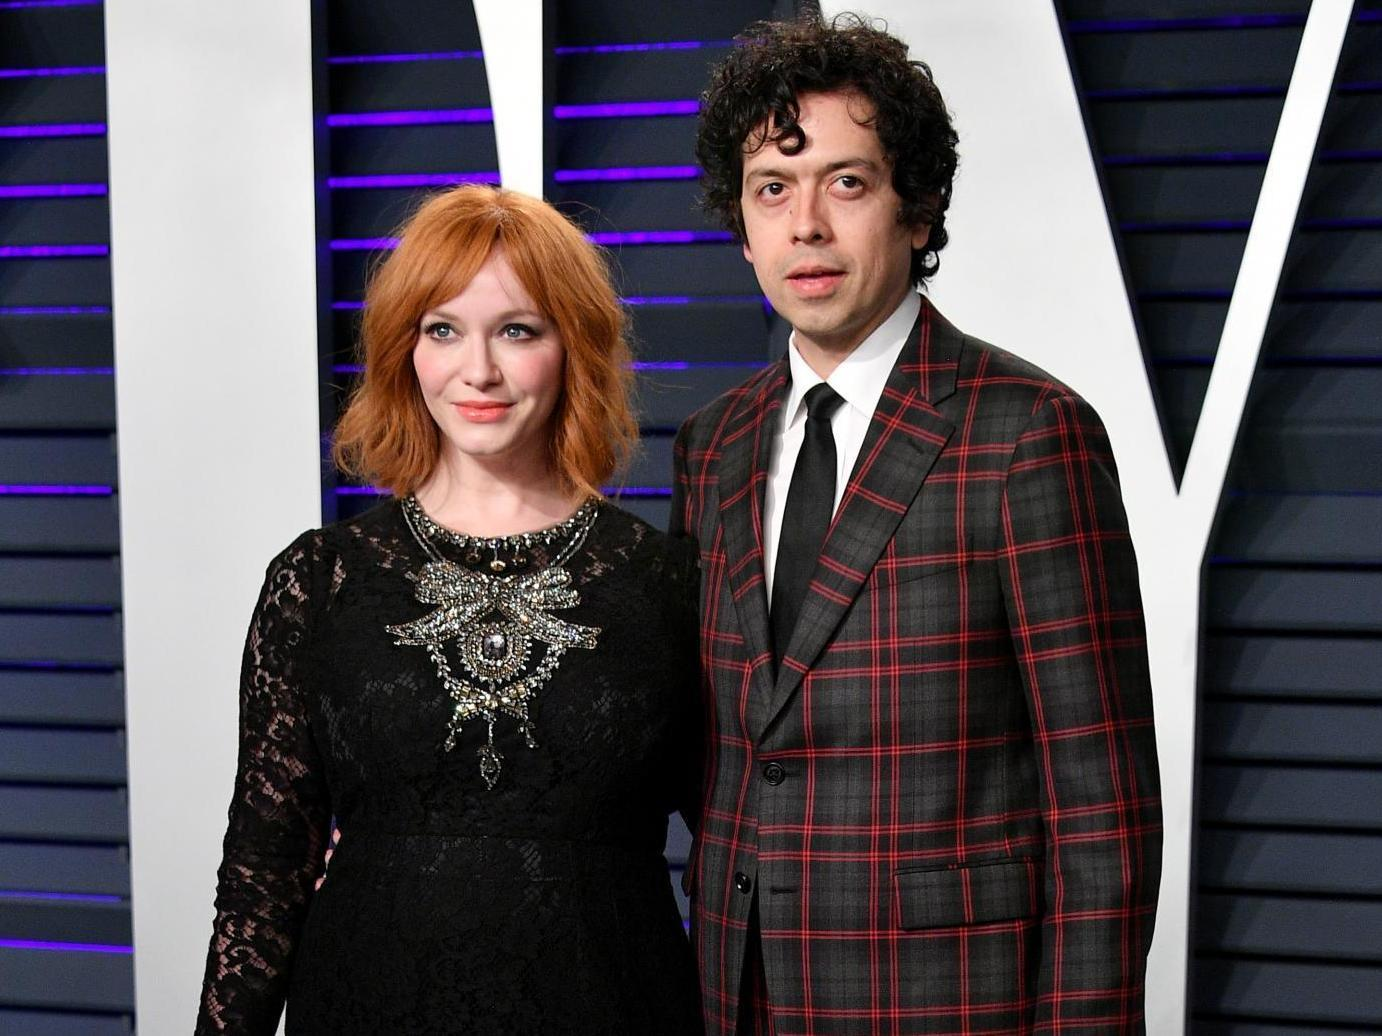 Christina Hendricks announces split from husband Geoffrey Arend after 10 years of marriage